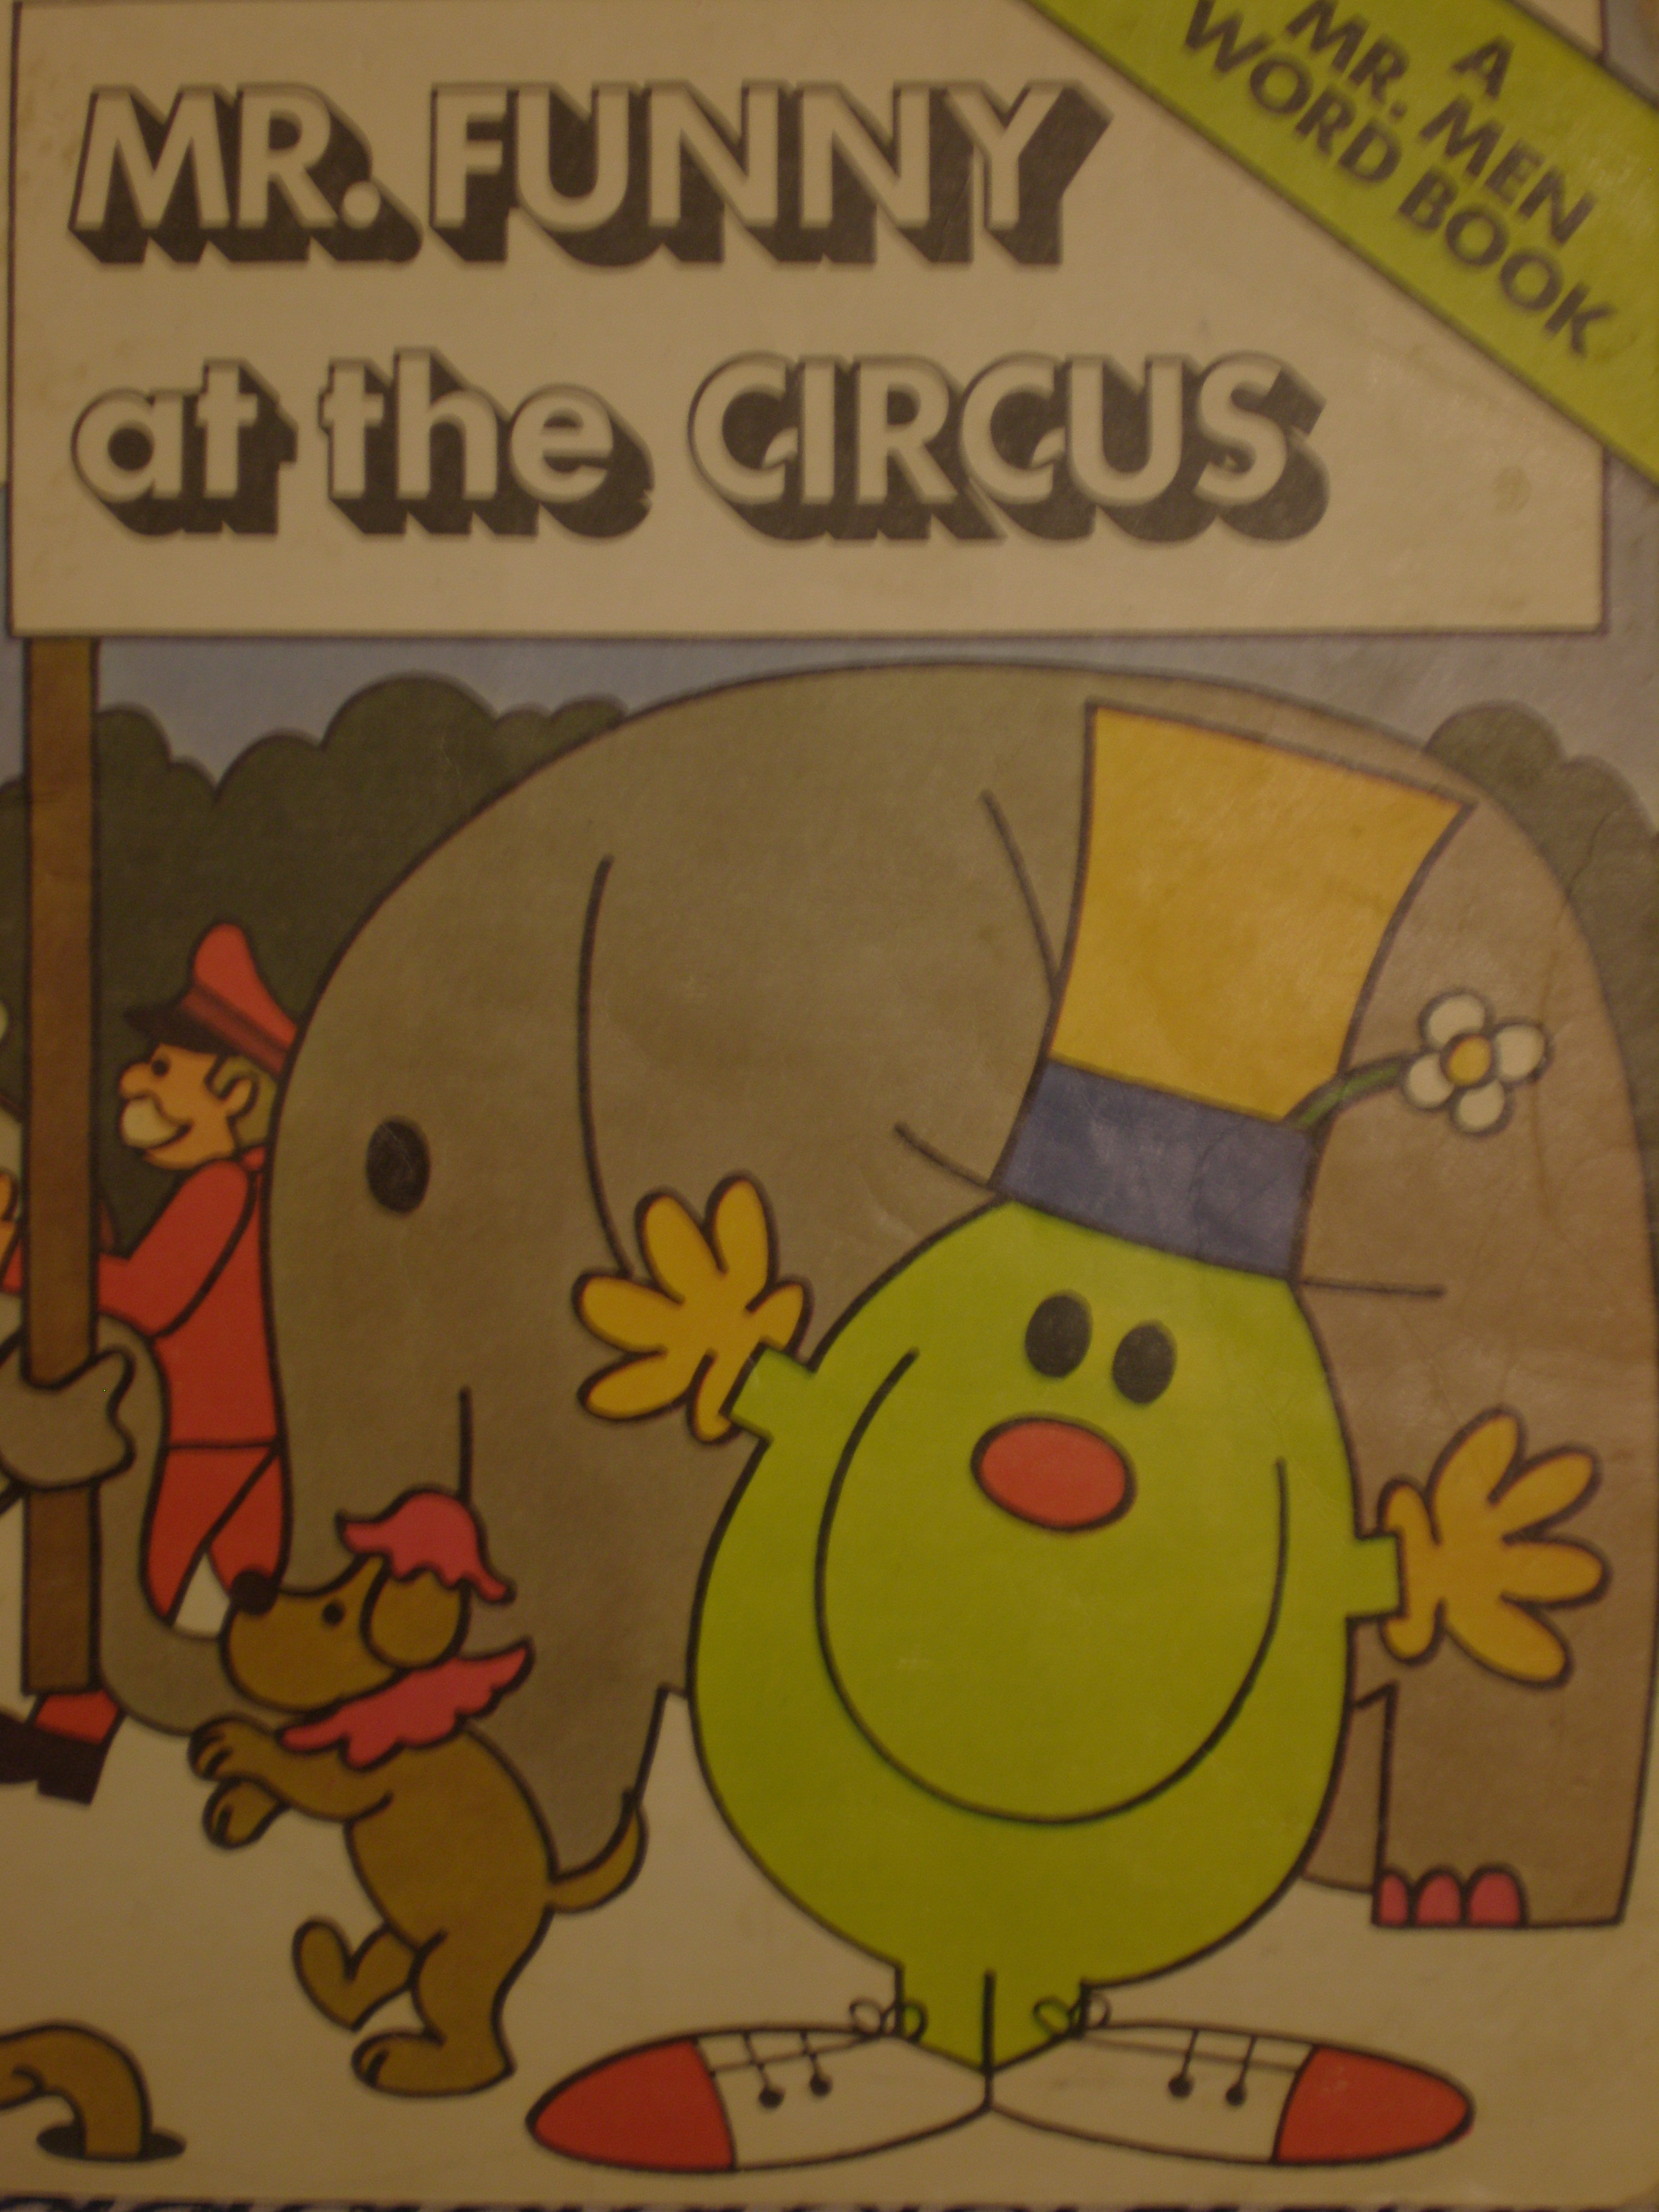 Mr. Funny at the Circus